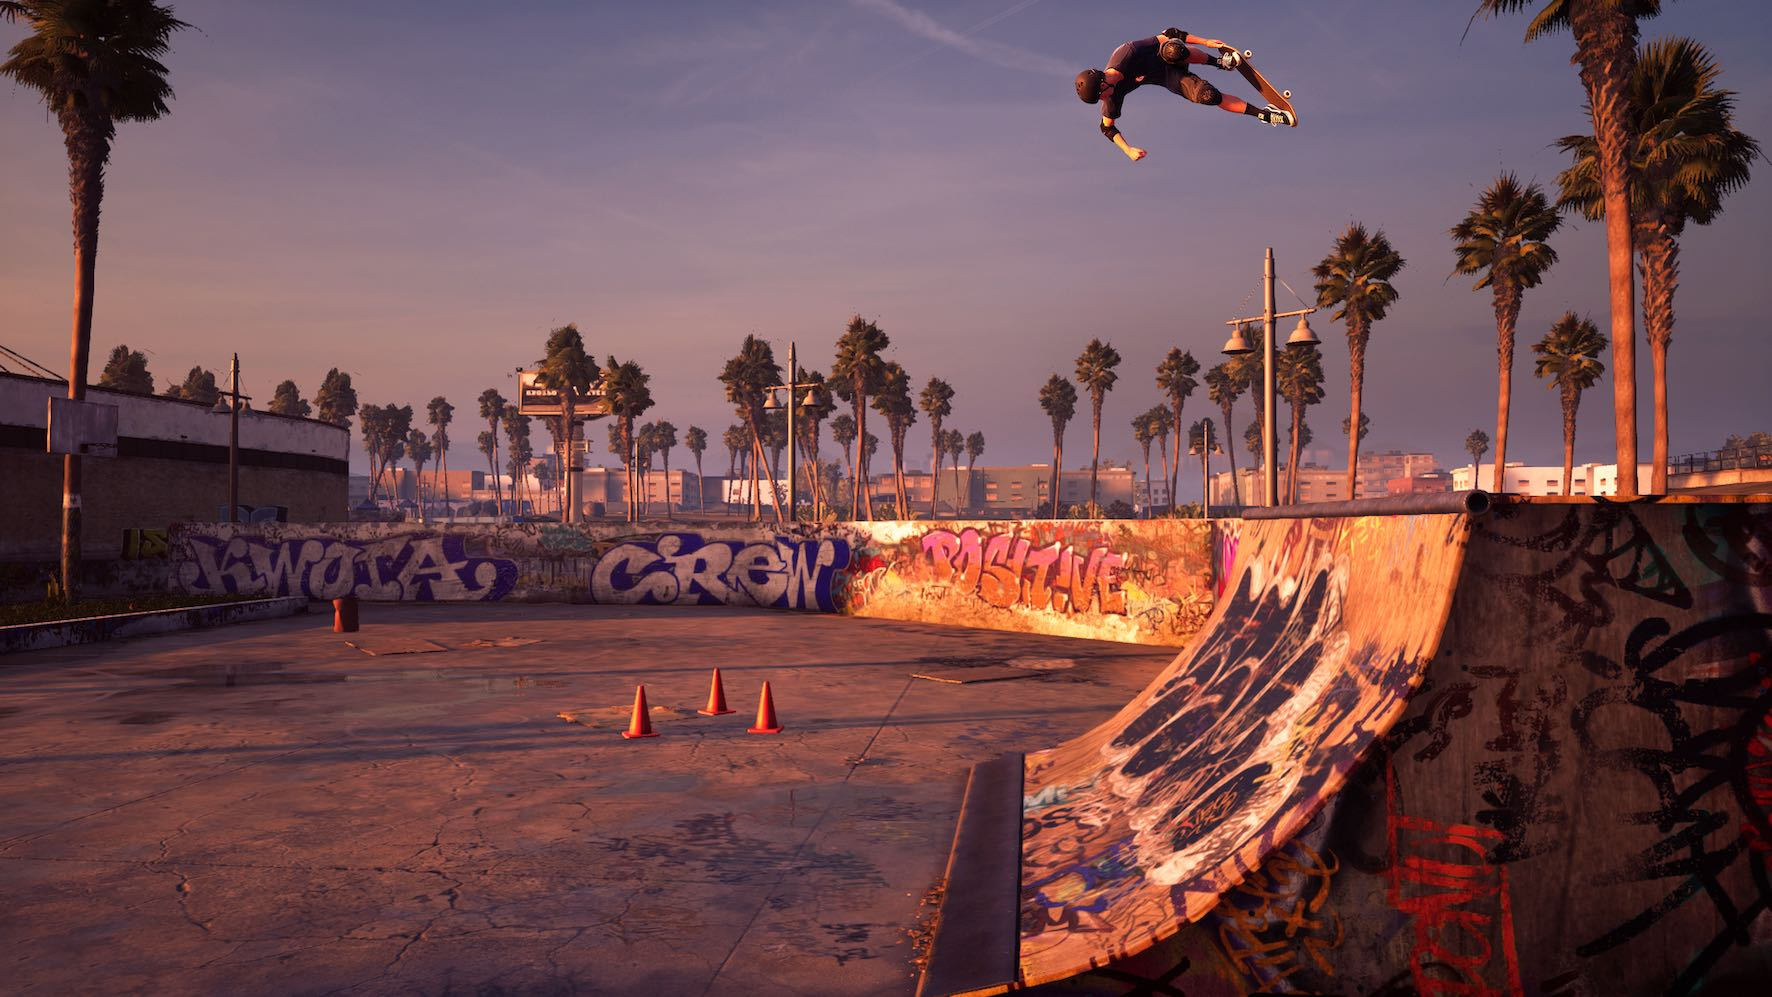 Gord Laws reviews the newly released Tony Hawk's Pro Skate 1 and 2